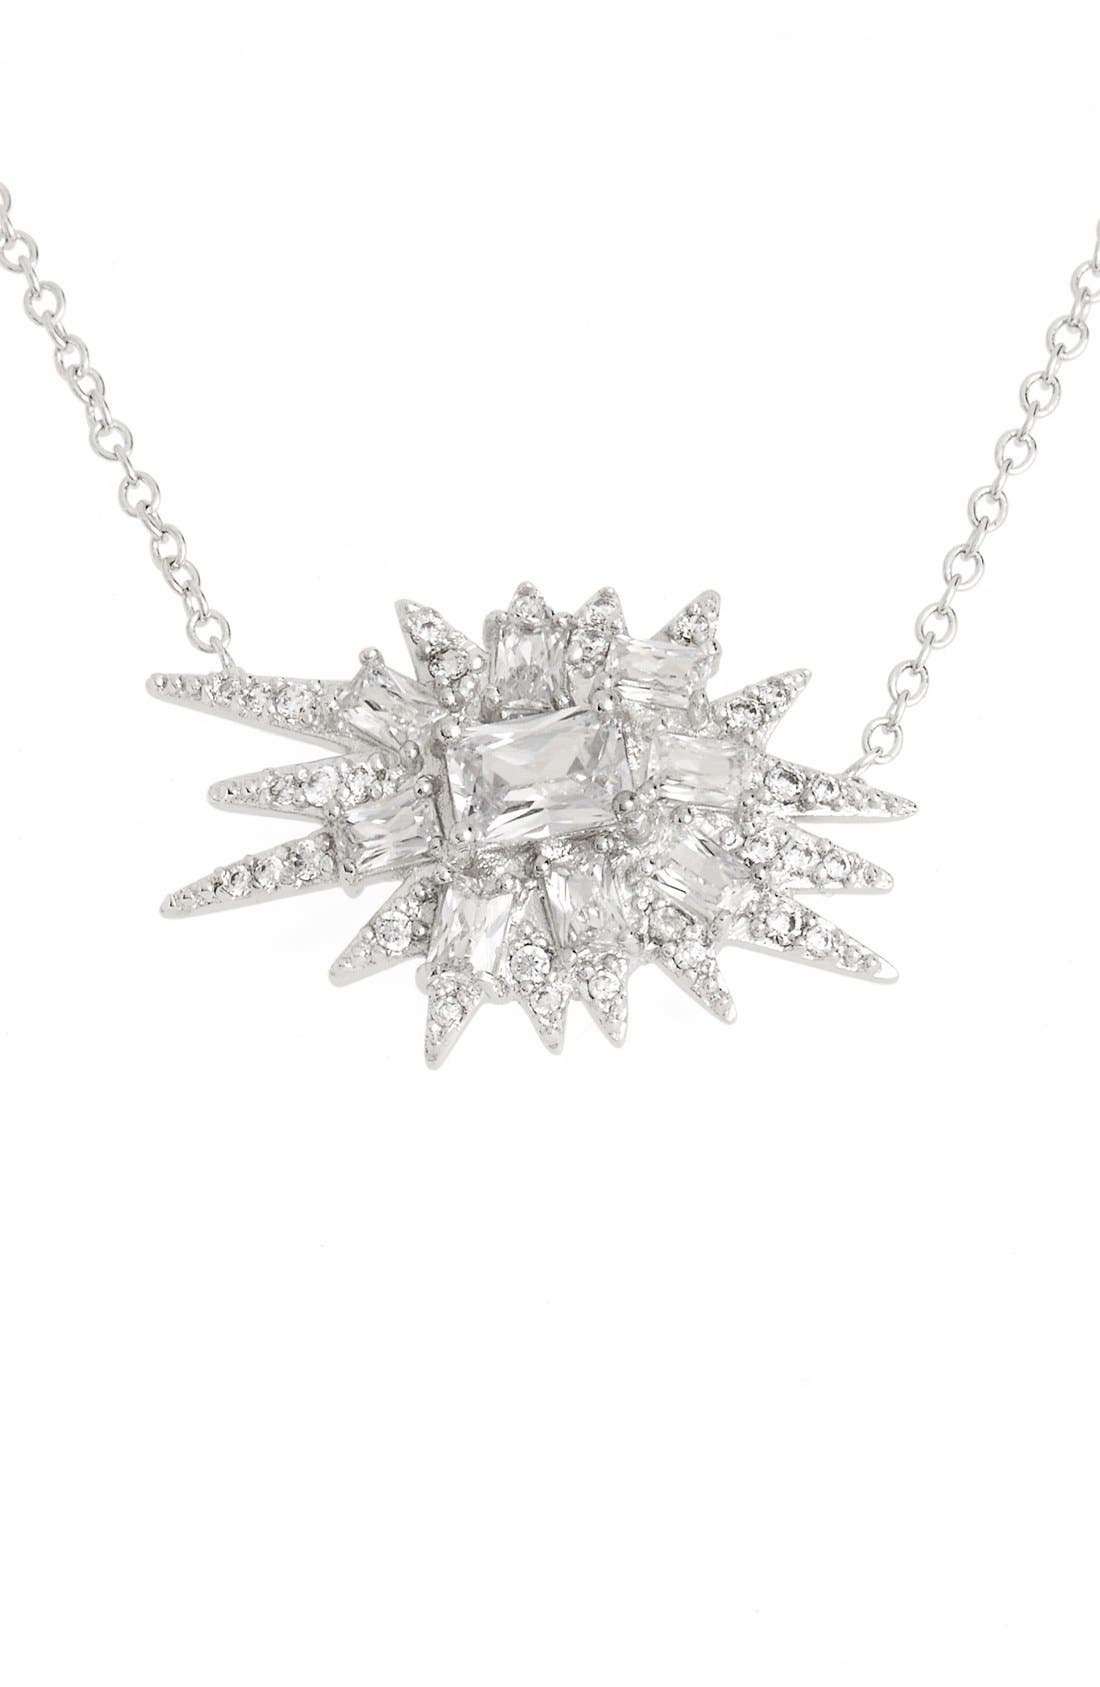 Alternate Image 1 Selected - CZ by Kenneth Jay Lane 'Explosion' Cubic Zirconia Pendant Necklace